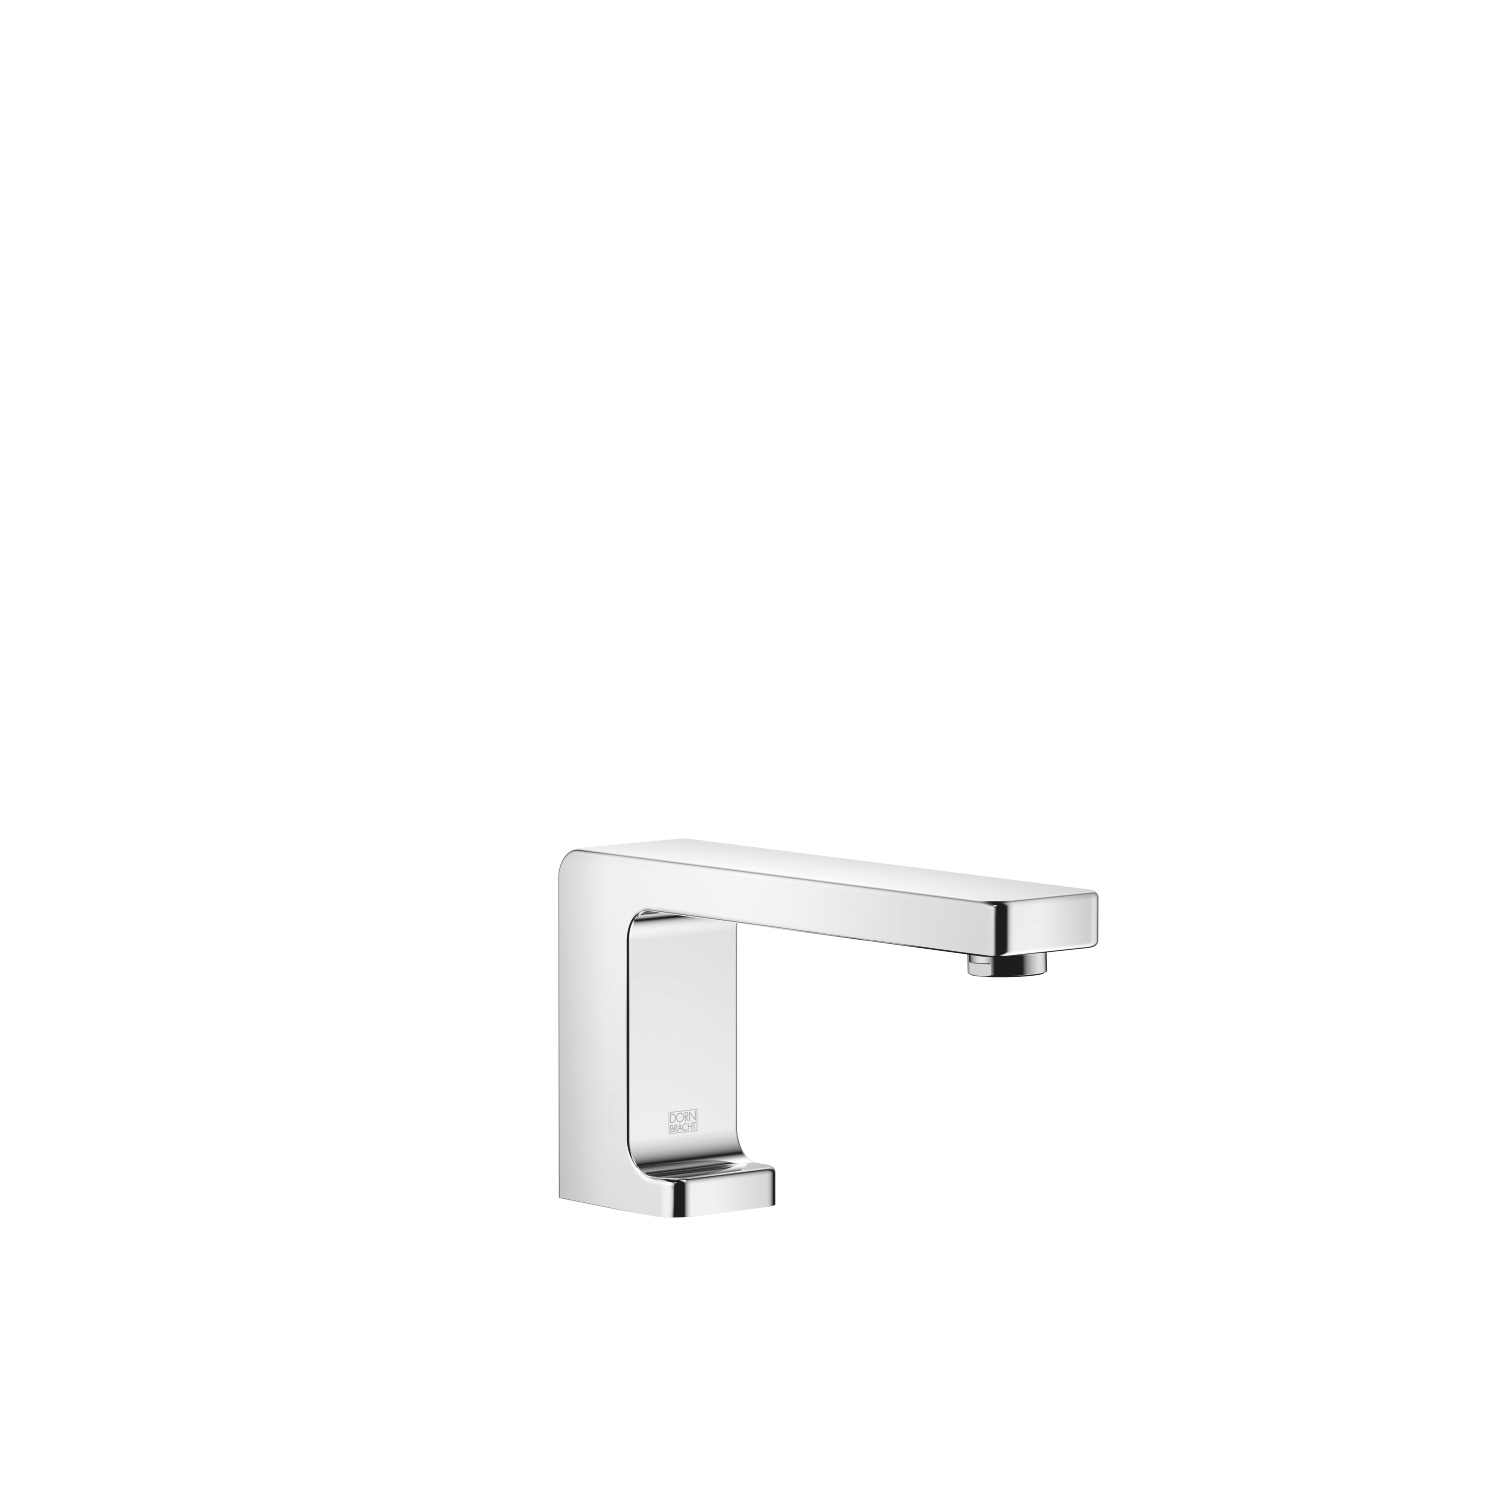 eSET Touchfree Basin mixer without pop-up waste without temperature setting - polished chrome